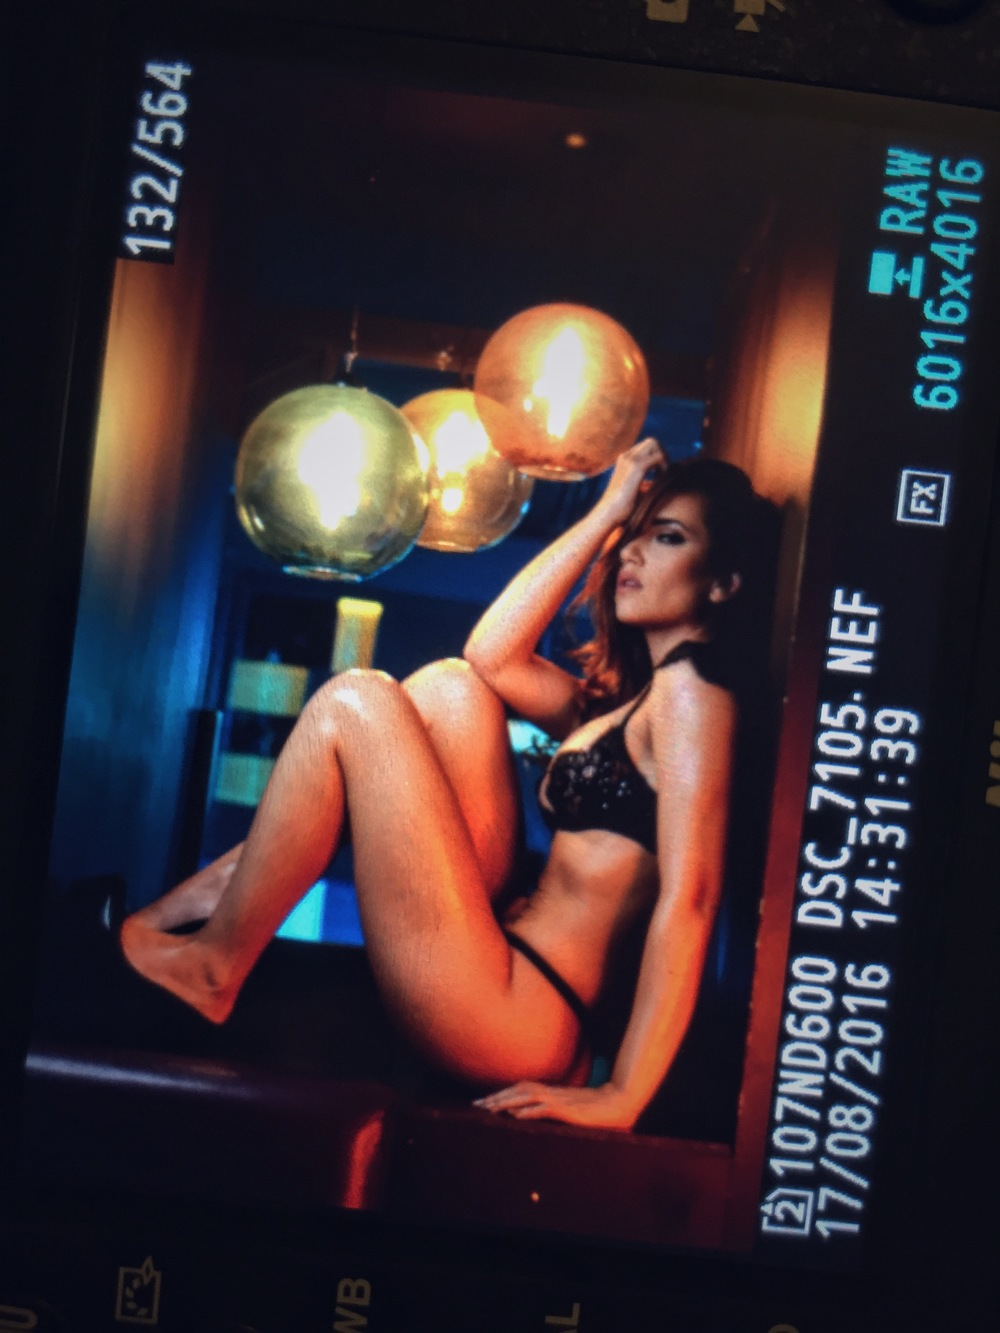 I only did this shoot a few days ago so it hasn't made it into the editing queue yet but here's a back of the camera shot of the club we were in. It had a couple of really low wattage goldfish bowl style bulbs which I wanted to include in the shot but to get any light to show I had to shoot at ISO 800 1/60 sec. at f2.8. This shot simply wasn't possible with my older slower lens.